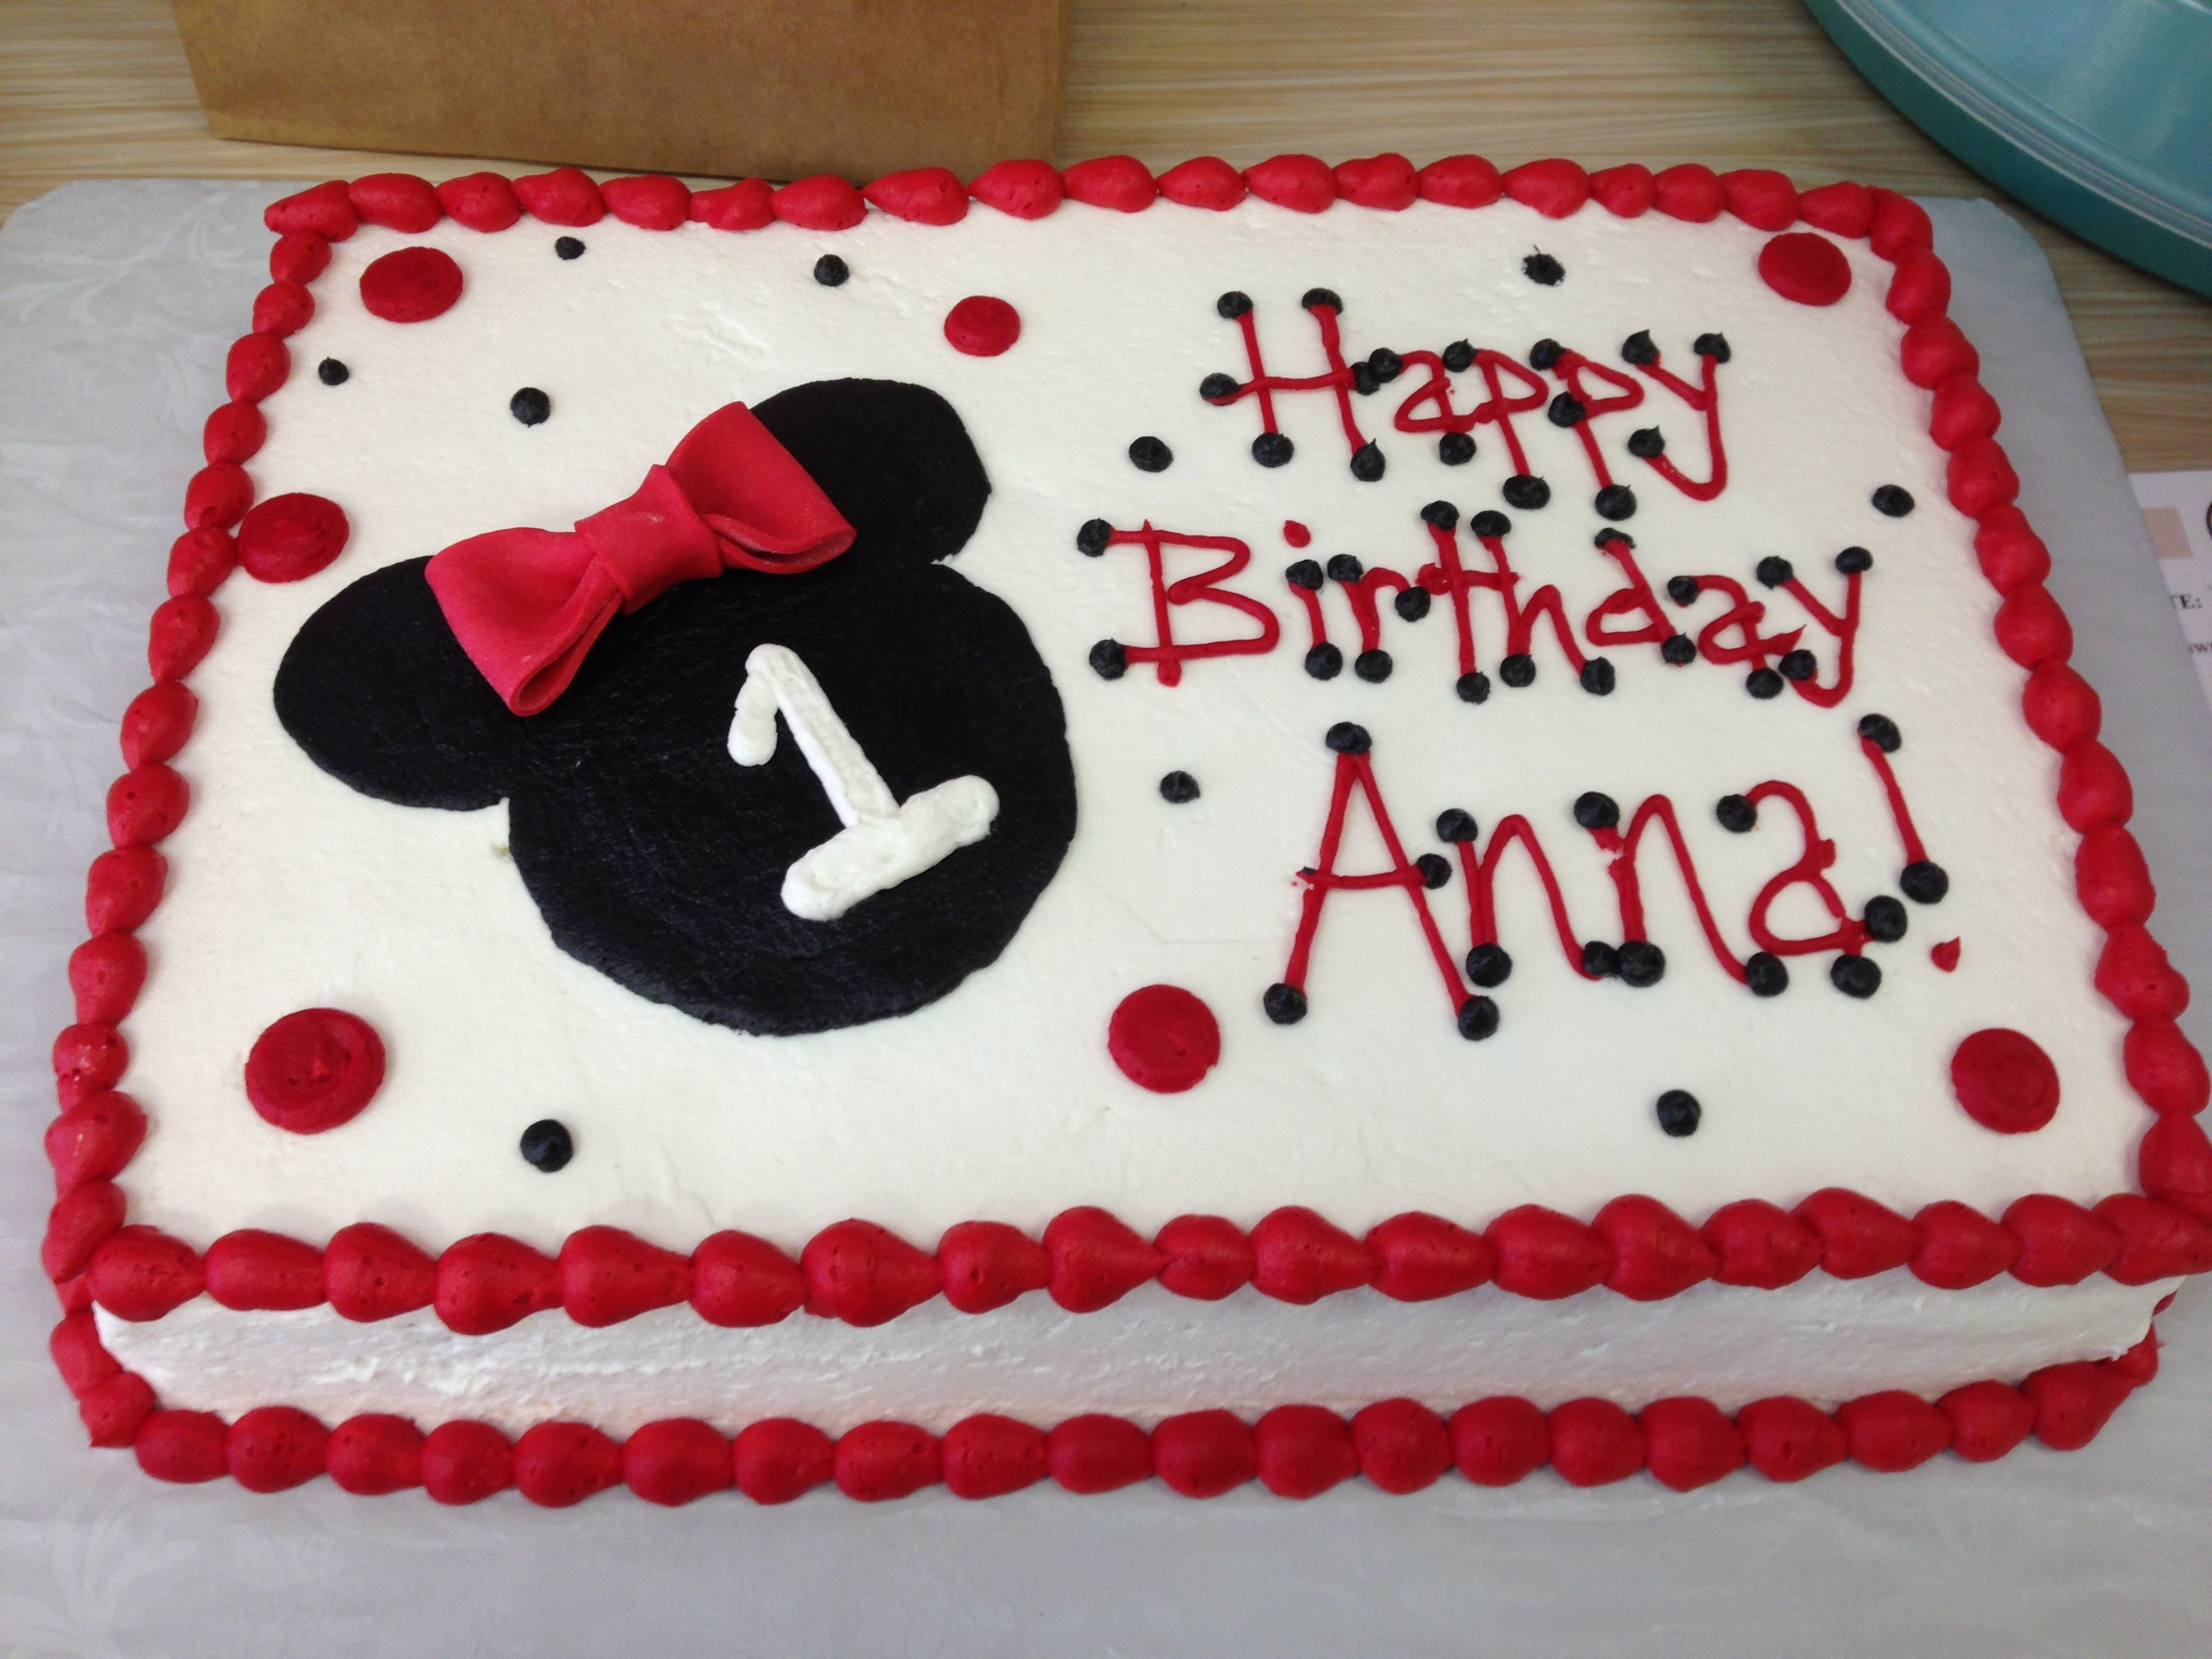 Minnie Mouse Sheet Cake.JPG (3264x2448) minnie mouse ...